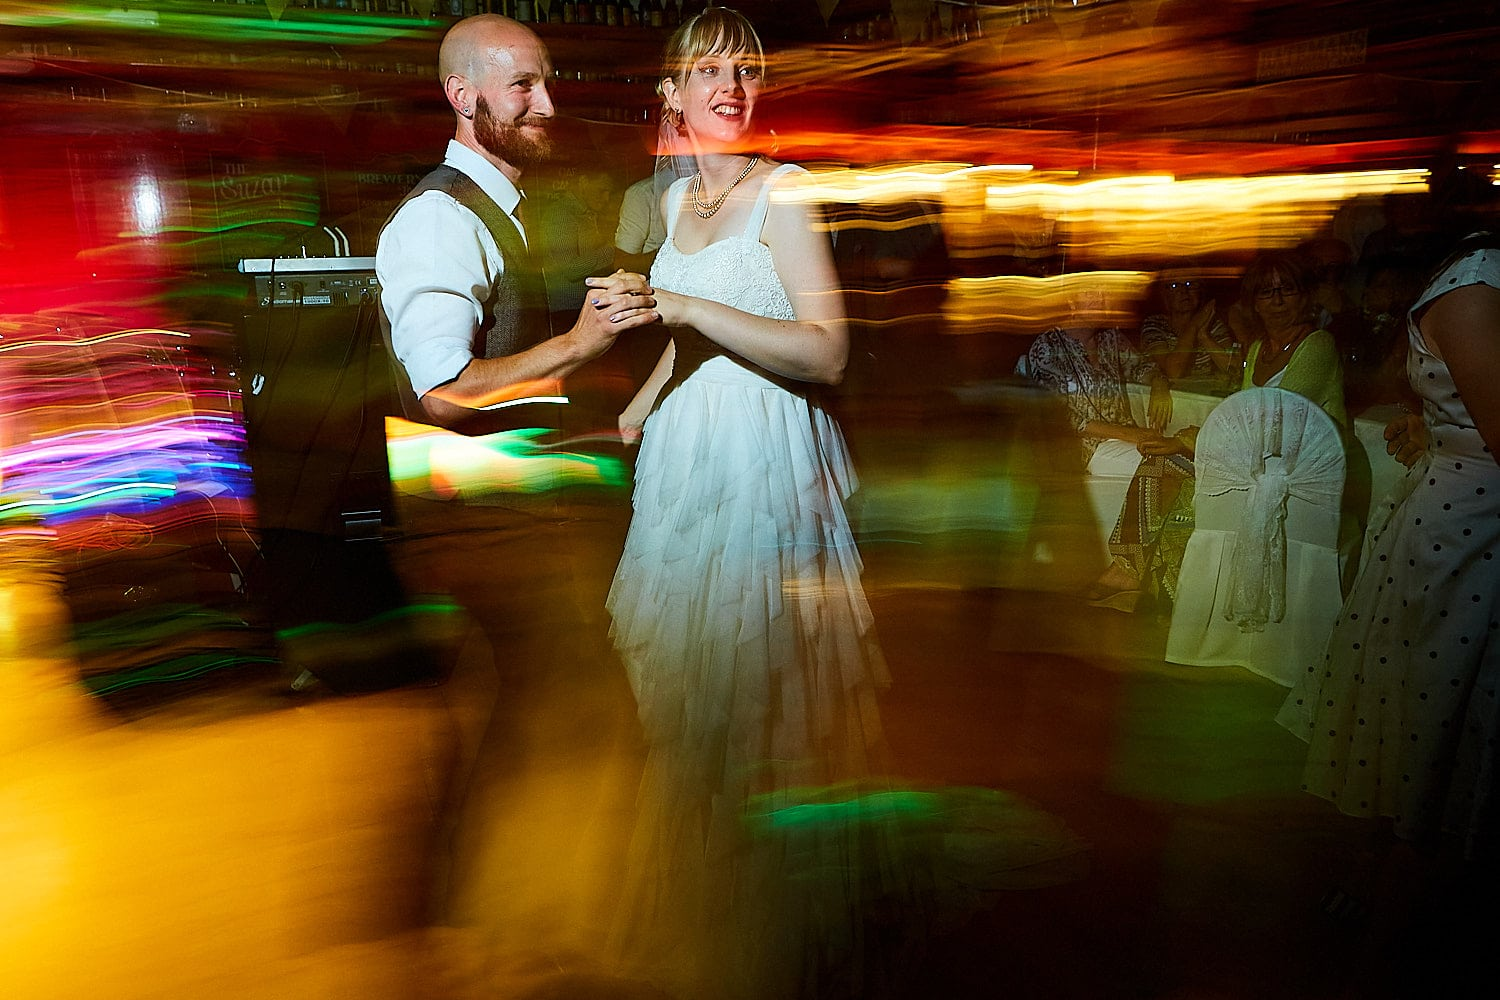 A couple dance through light trails on their wedding day at Batemans Brewery in Wainfleet